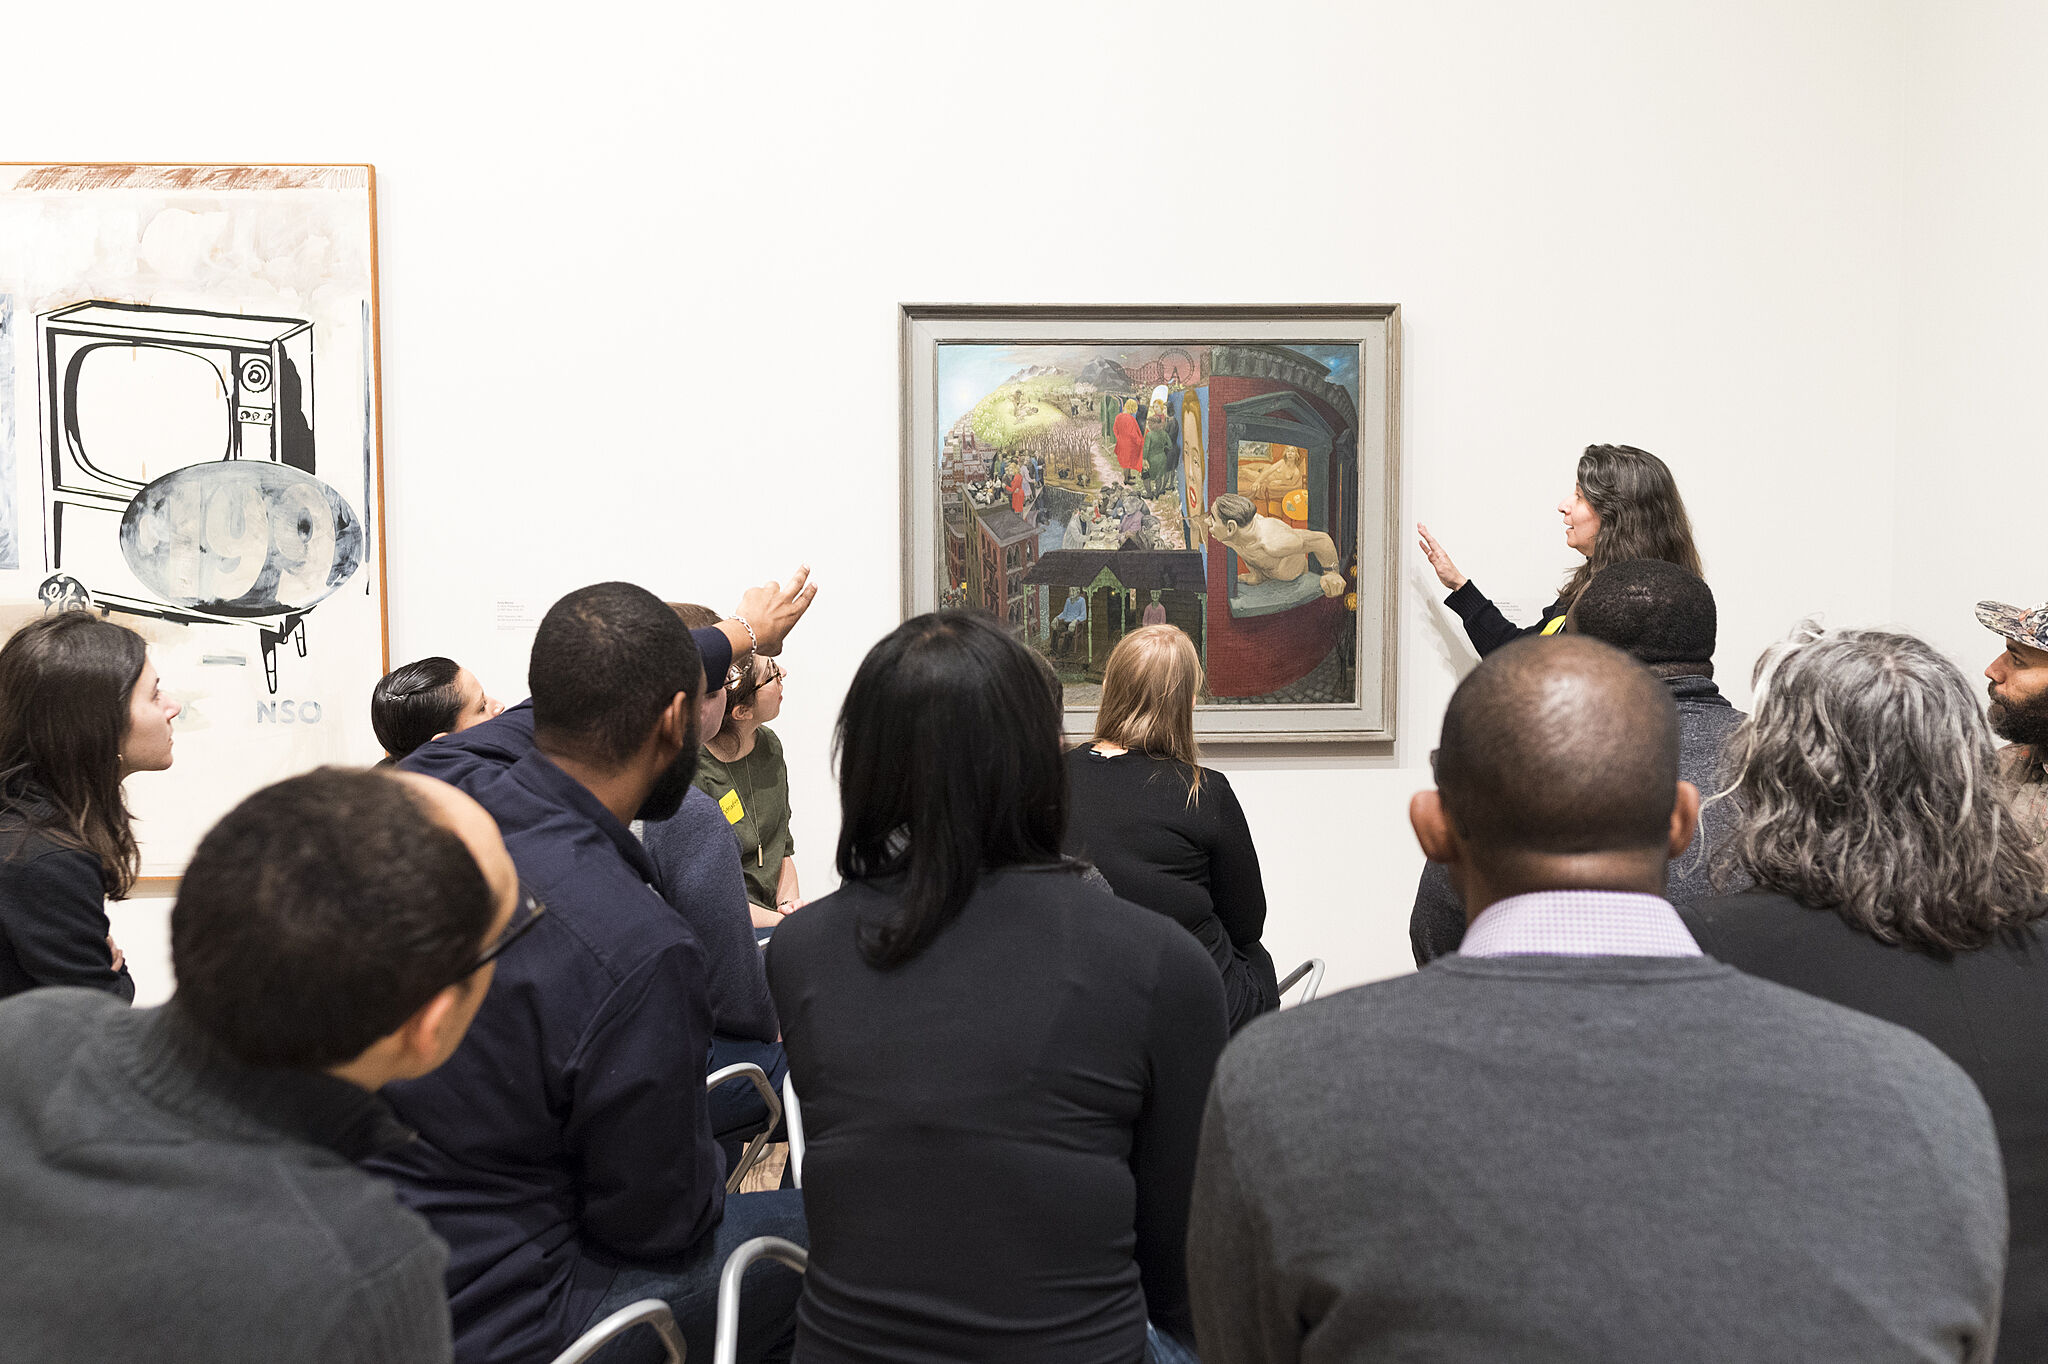 A photo of a woman pointing at a painting while a small group looks at the piece.